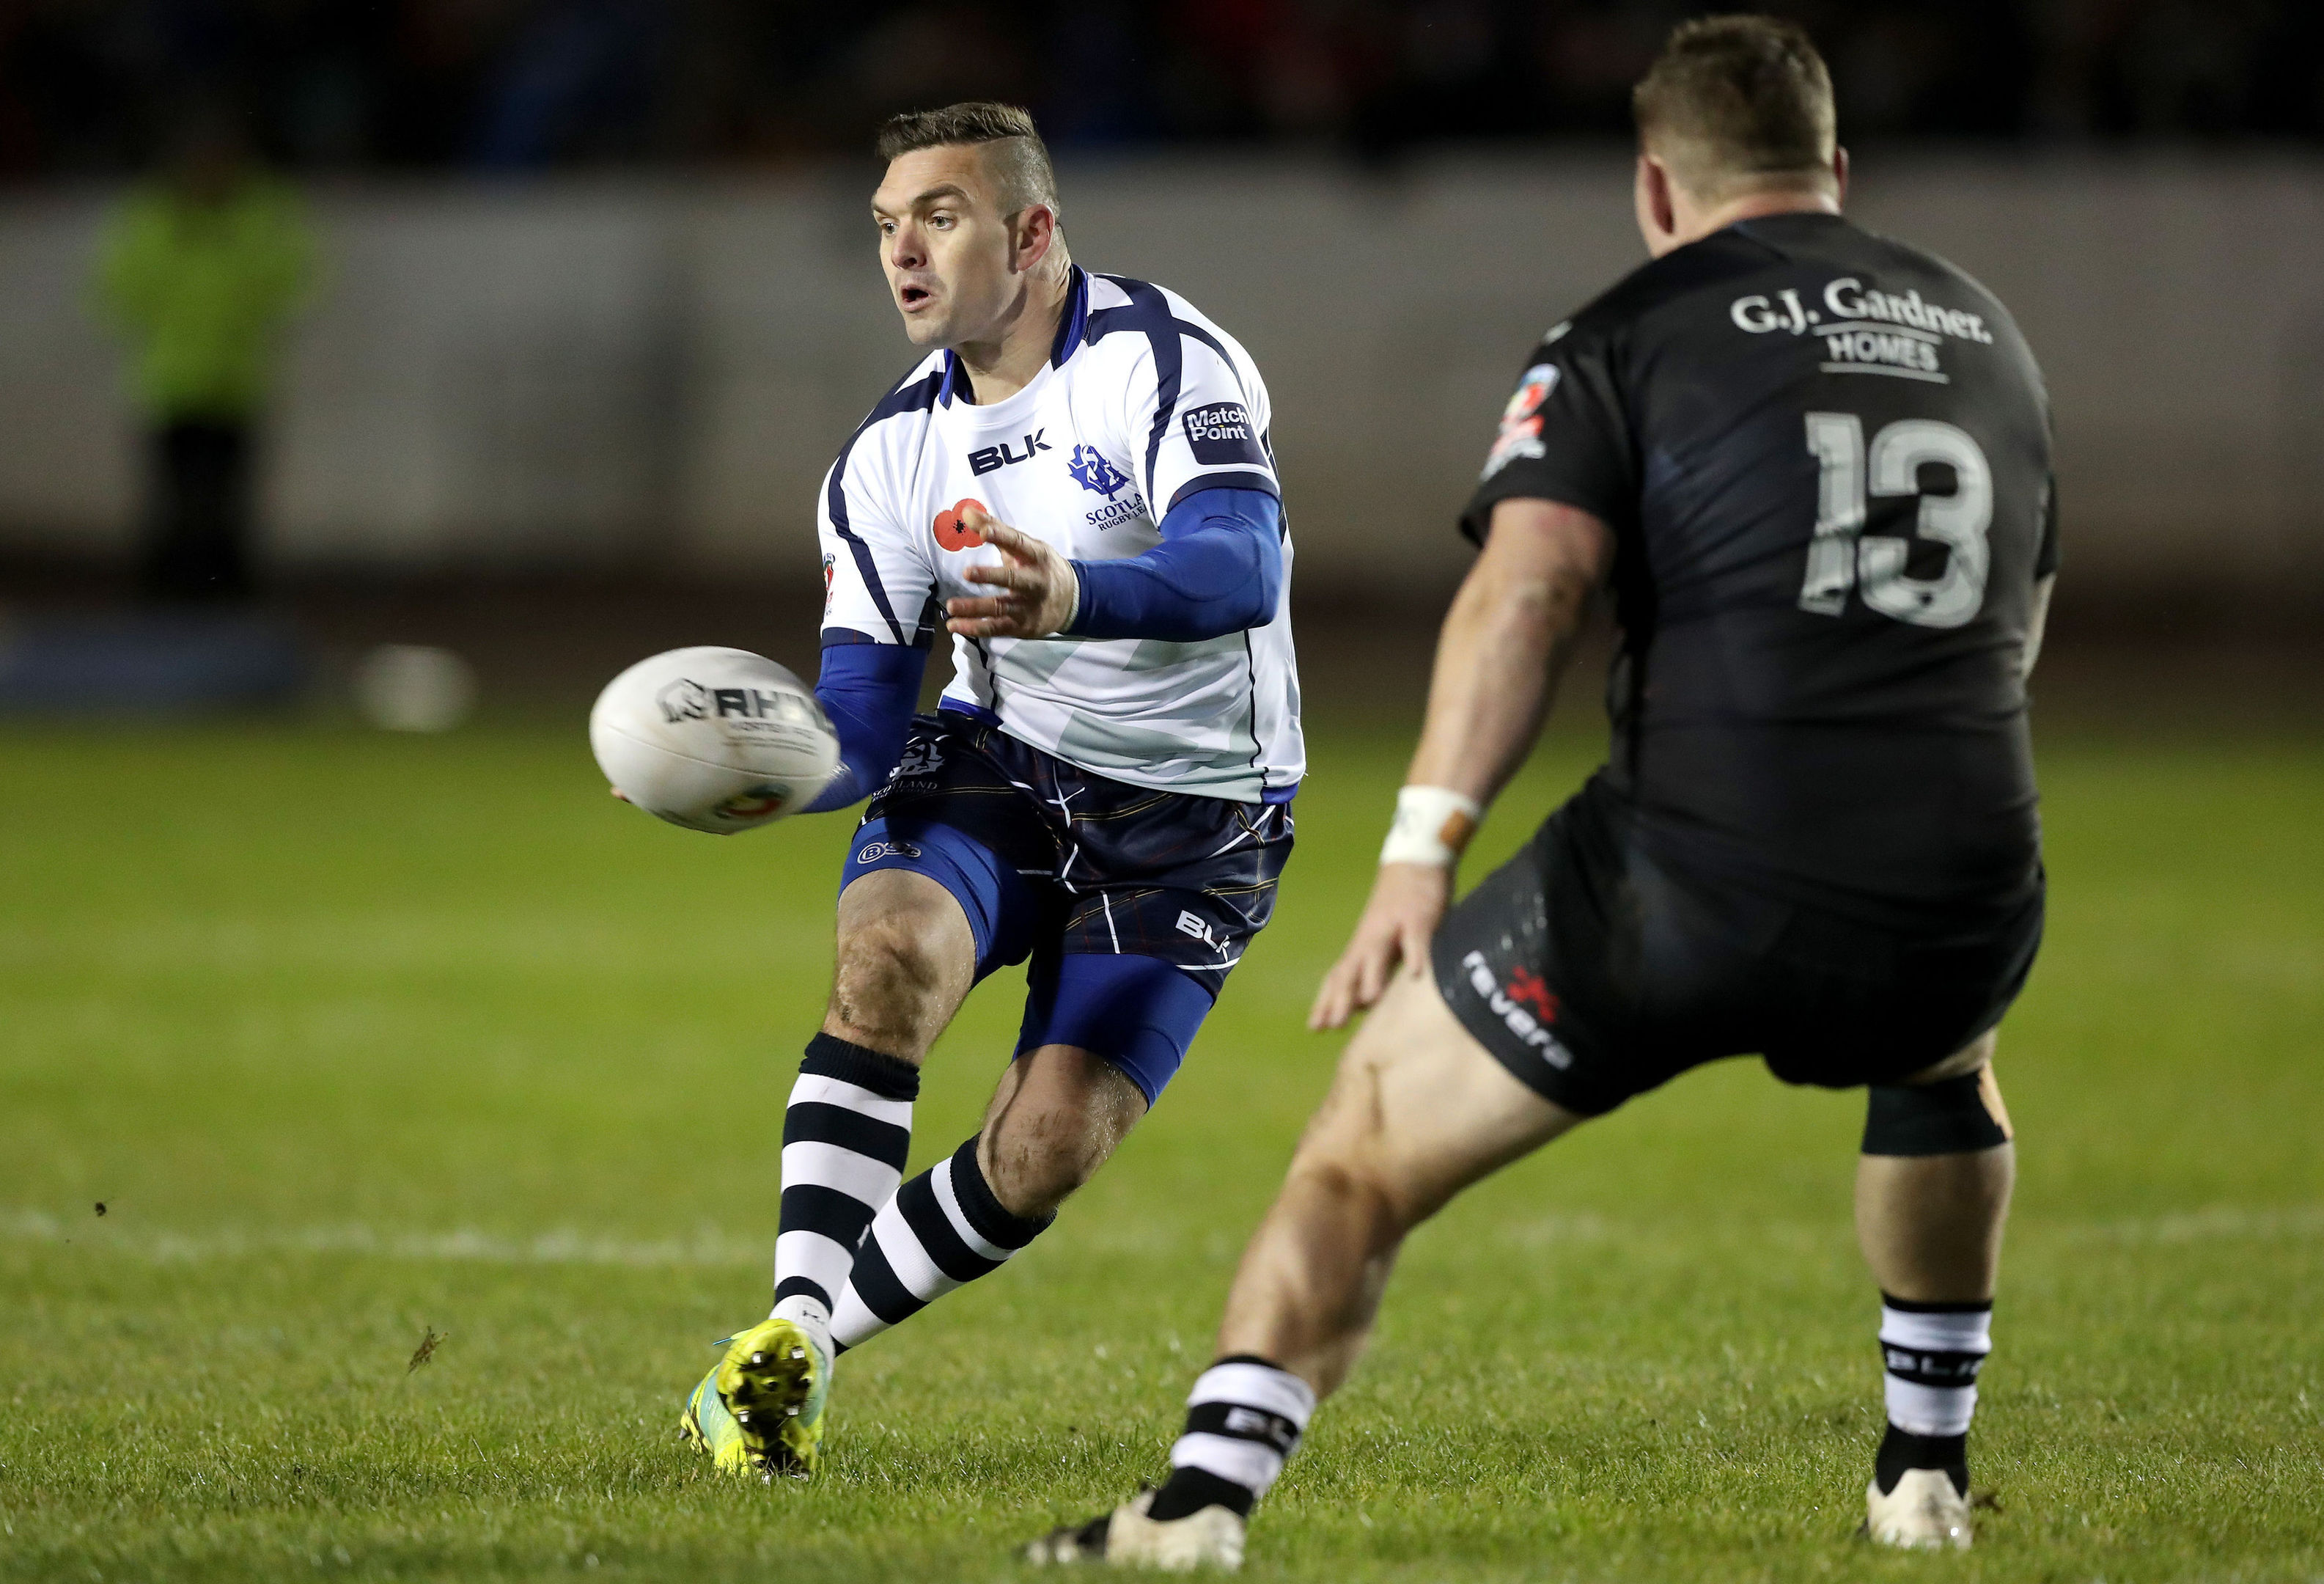 Scotland's Danny Brough in action (Martin Rickett/PA Wire)